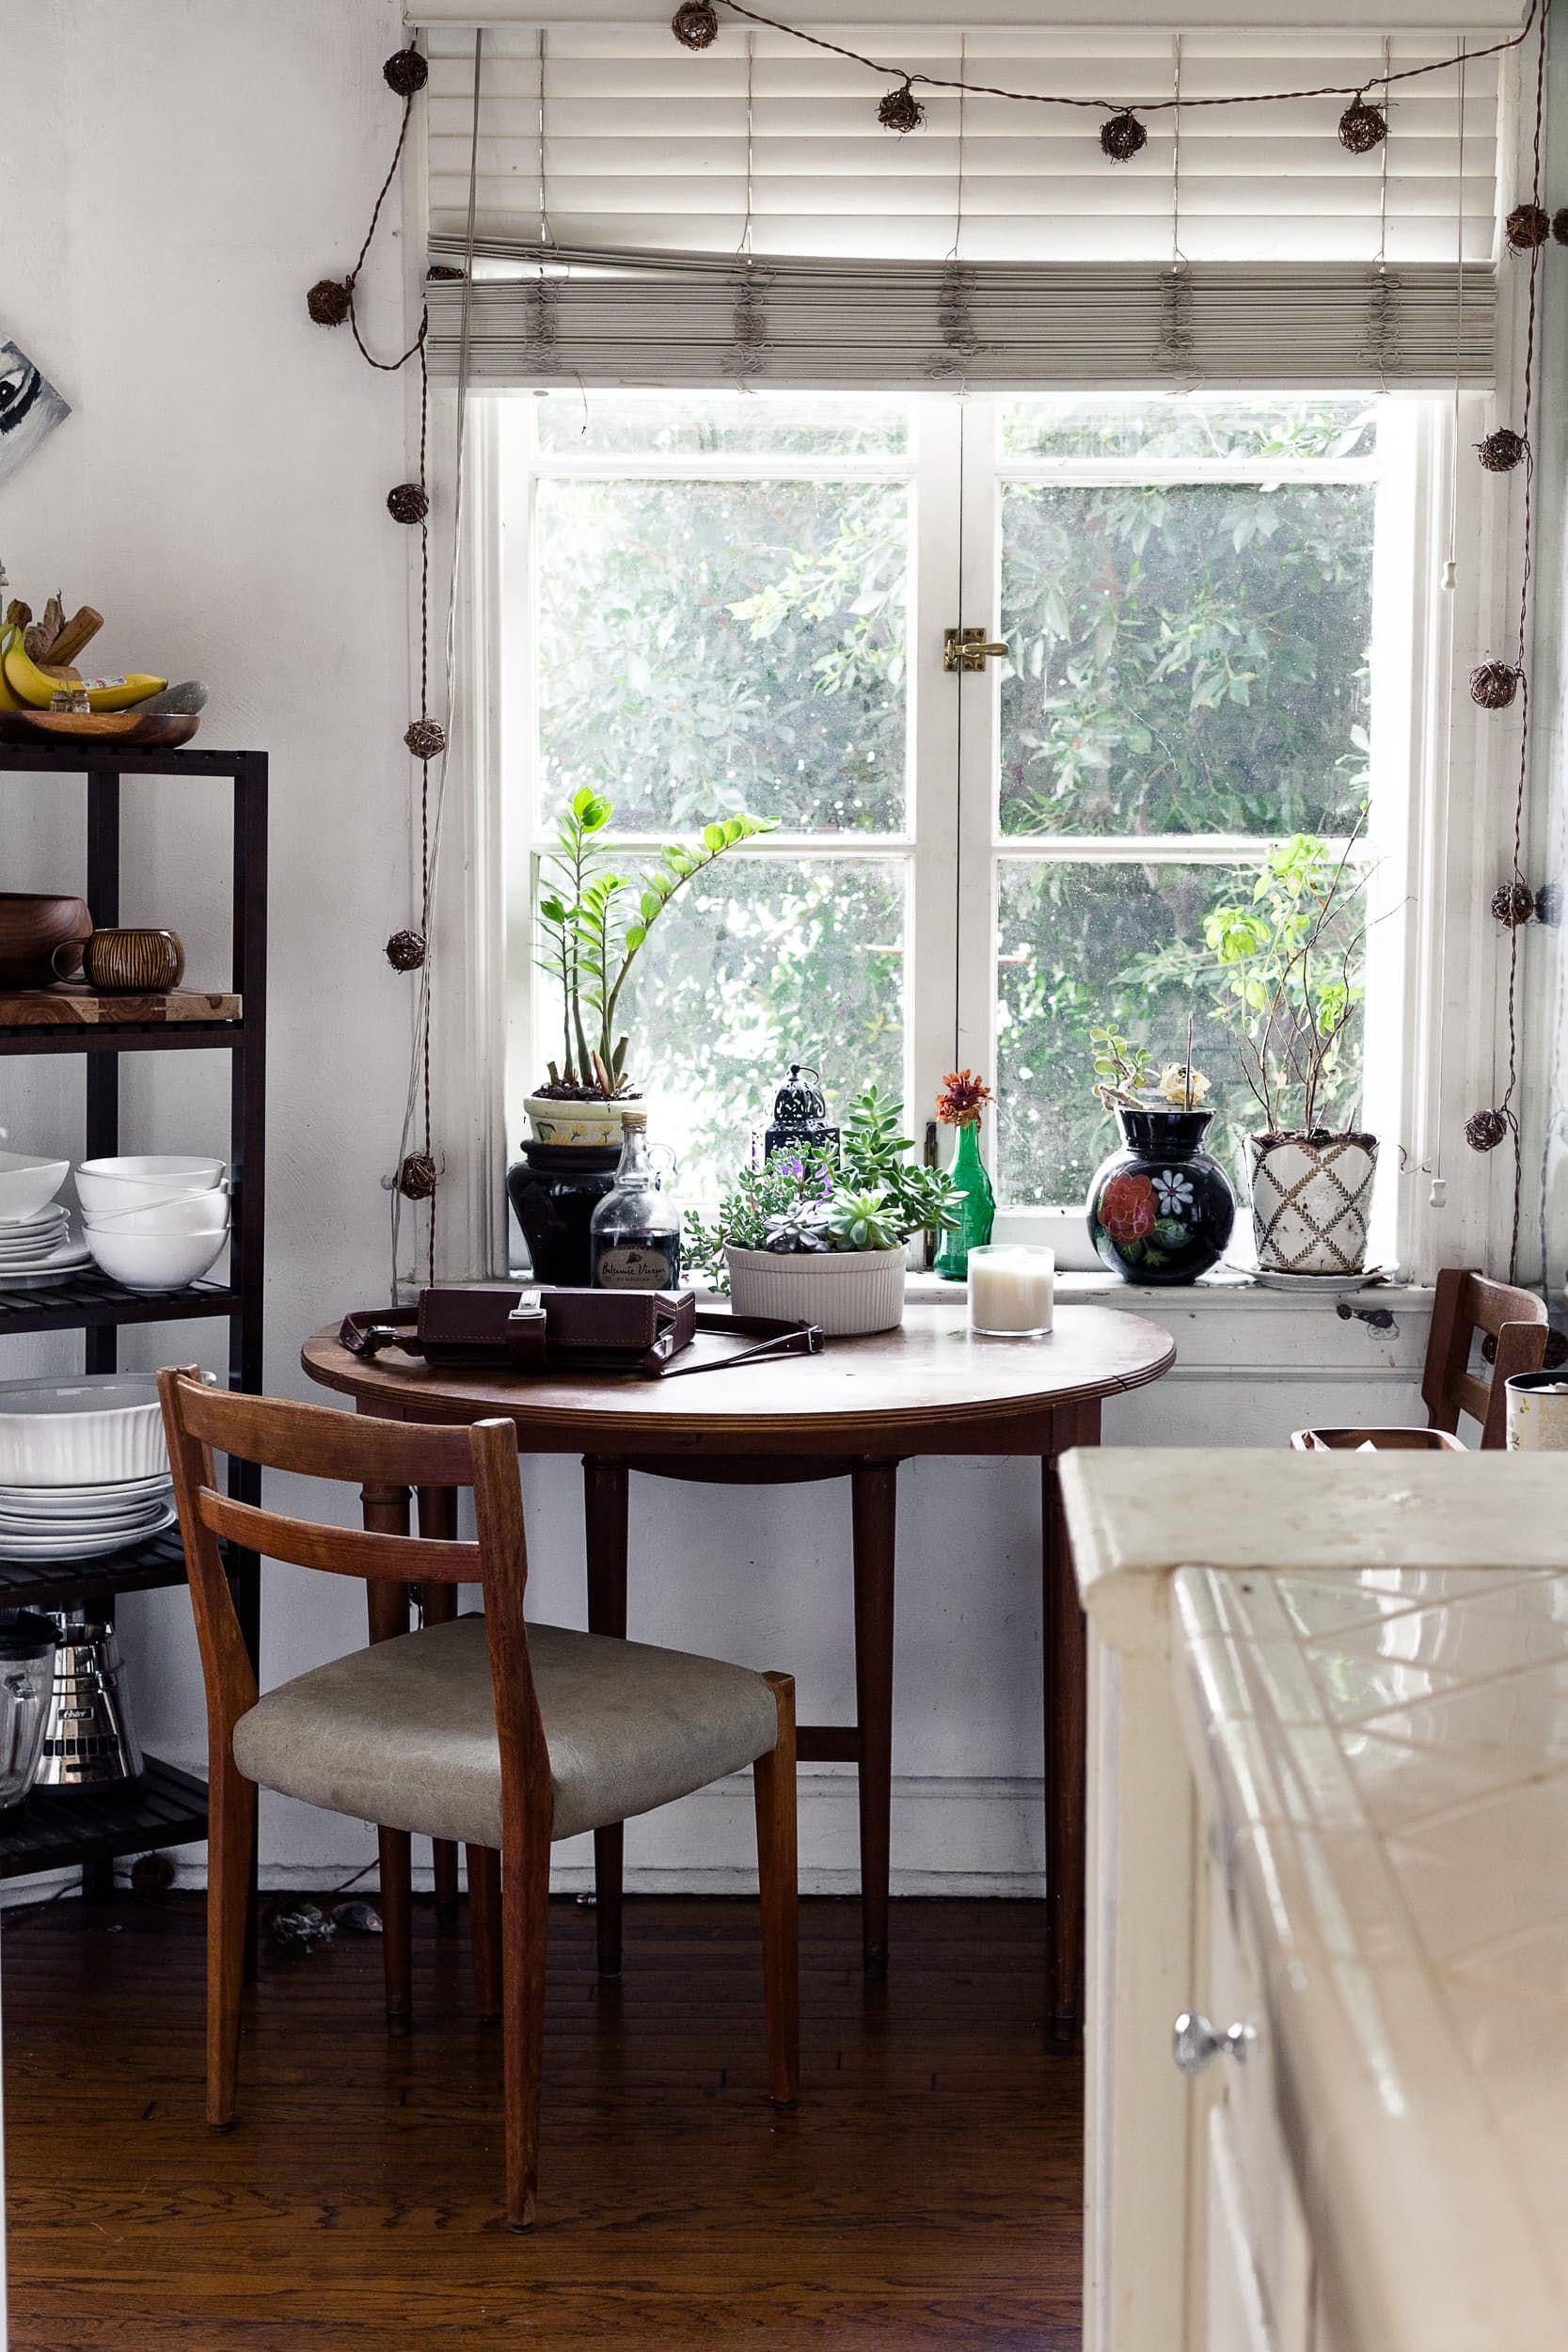 eat in kitchen furniture. A Cozy Eat-in Kitchen, All Made Up Of Thrift Store Finds. Eat In Kitchen Furniture